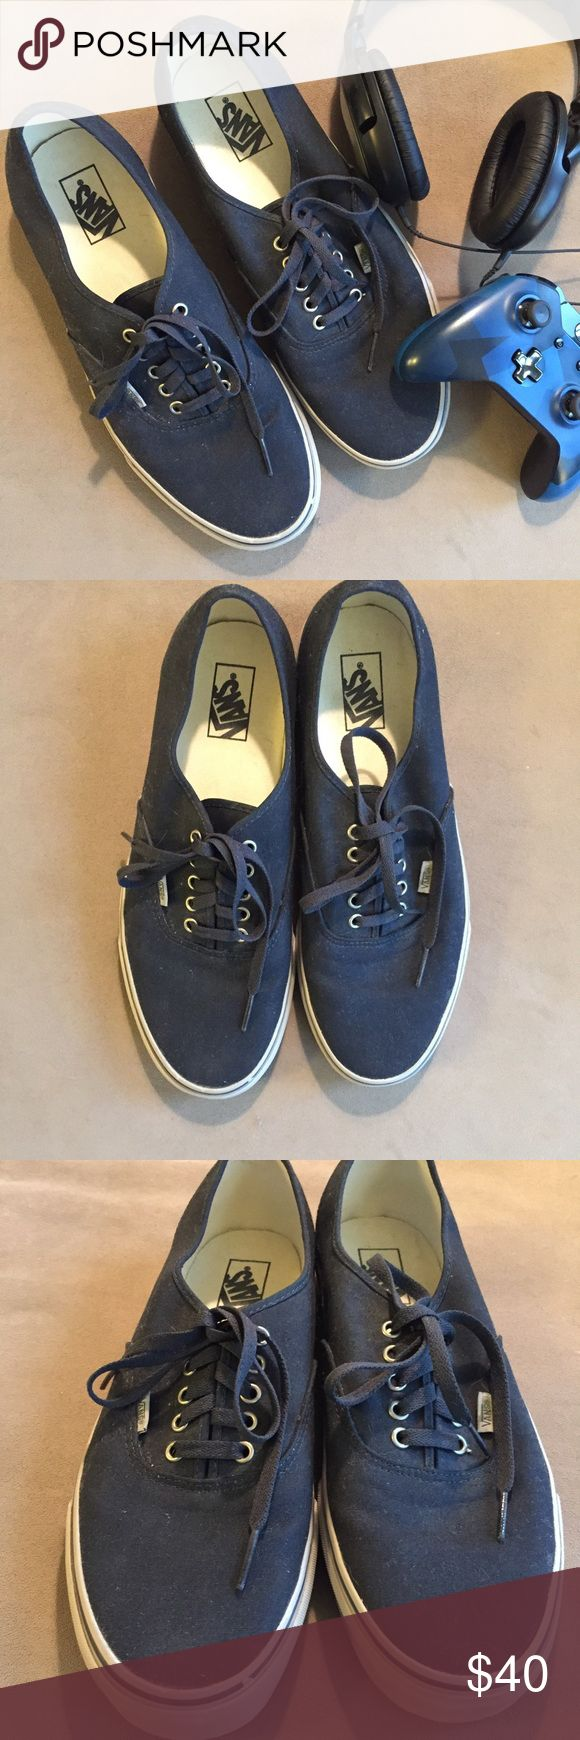 Van's Authentic Navy Mens Sneakers Vans The Authentic, the original and now iconic Vans style, features a simple low top, lace-up profile with sturdy canvas uppers, metal eyelets, and signature rubber waffle outsoles. In Navy color. Size Mens US 13. Vans Shoes Sneakers